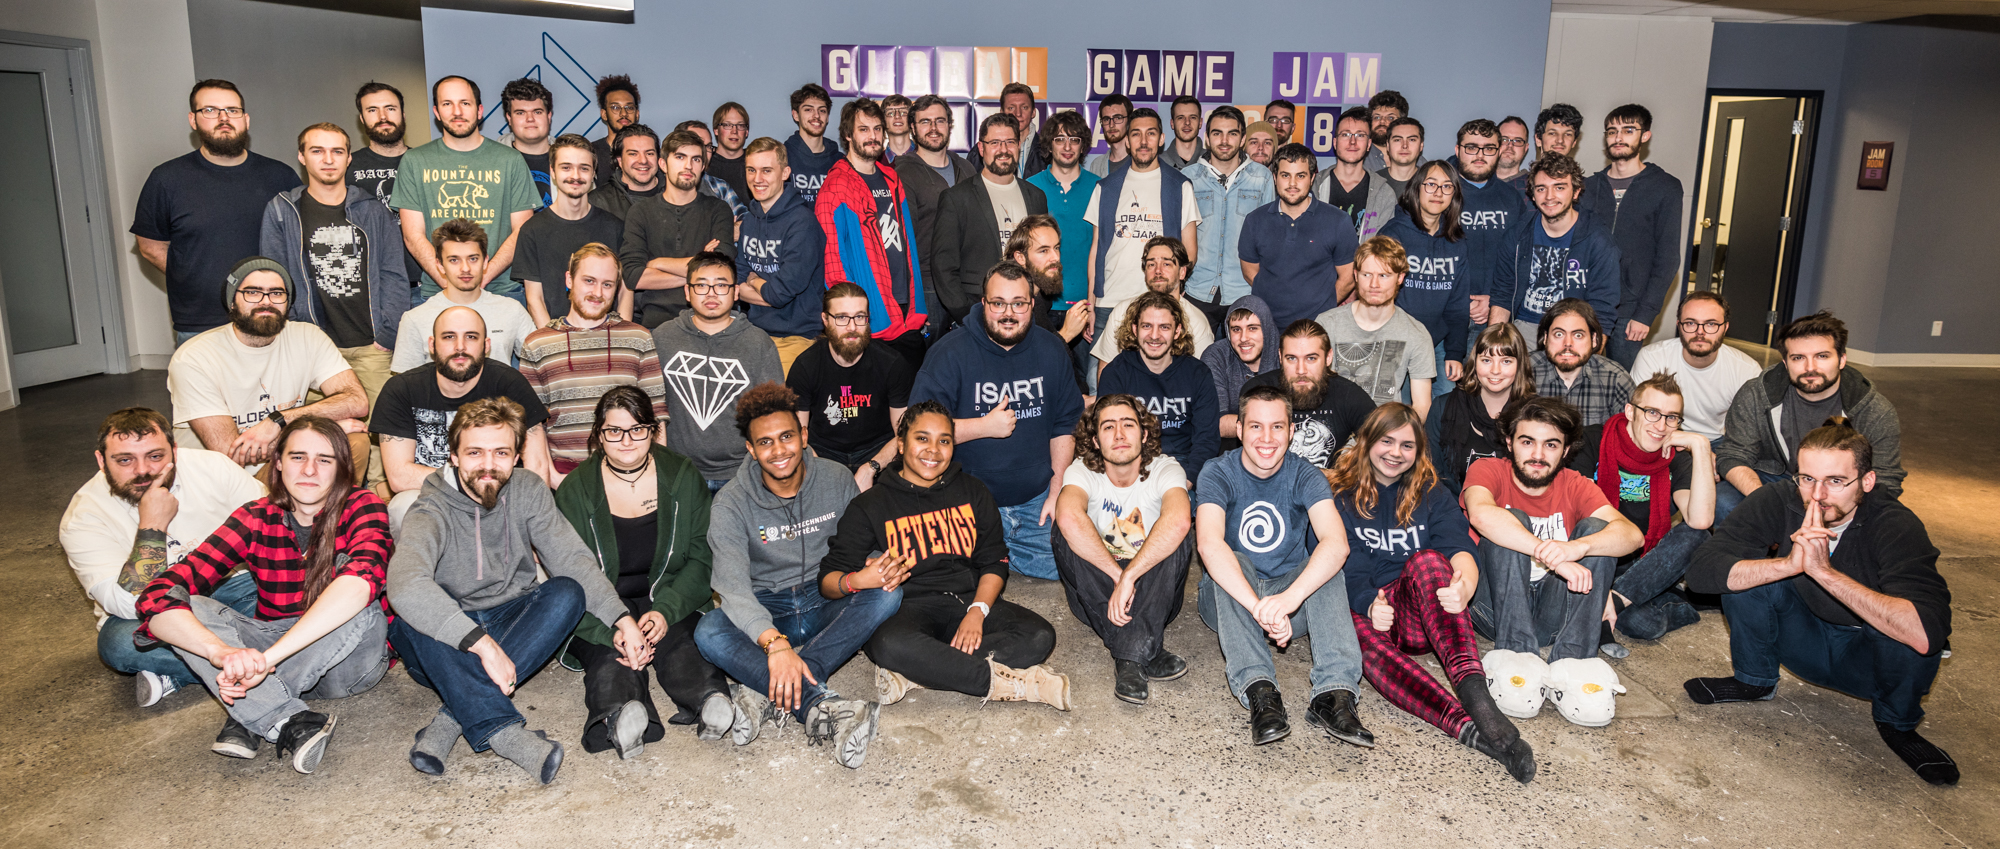 Global Game Jam Montréal 2018